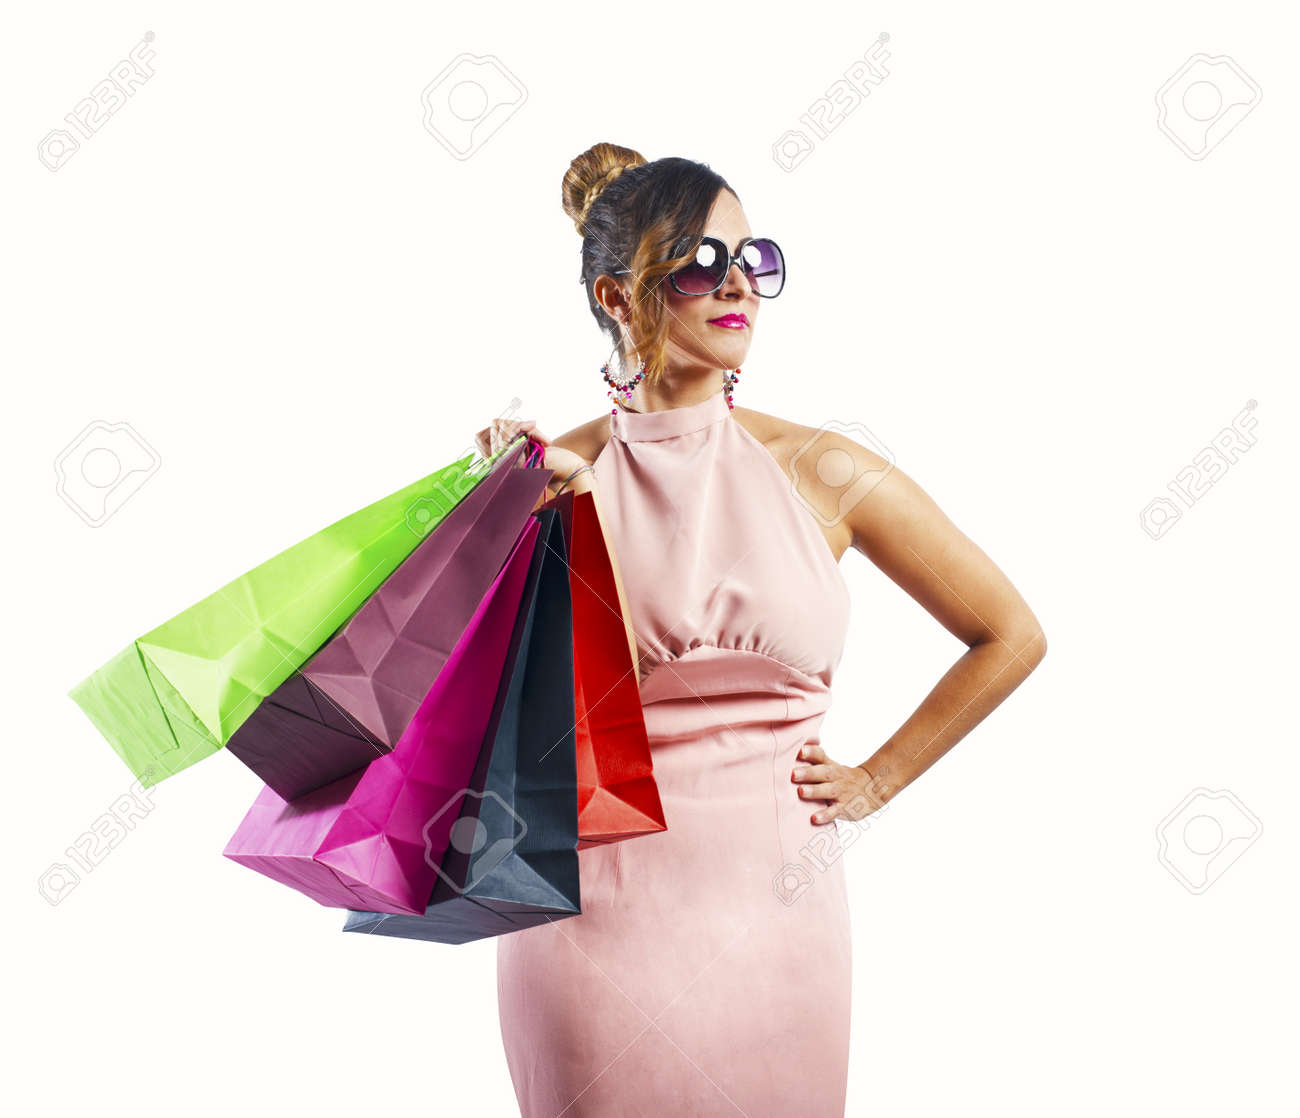 Beautiful young woman holding several shopping bags Stock Photo - 22720049